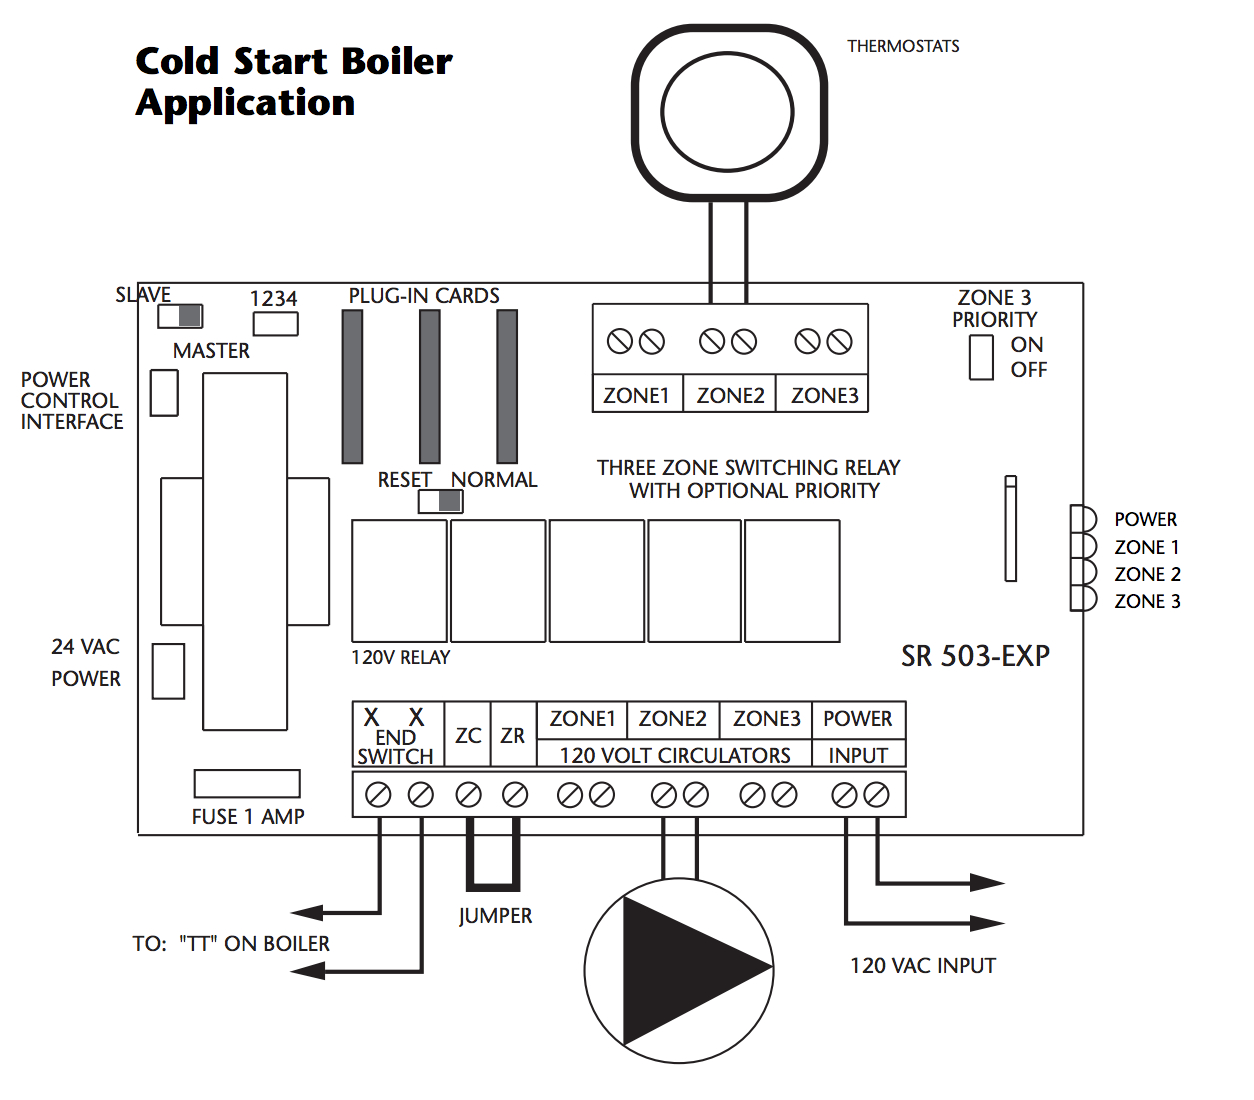 Wiring The Circulator Pump To An Everhot Tankless Water Heater - Cyclegard Wiring Diagram Nest